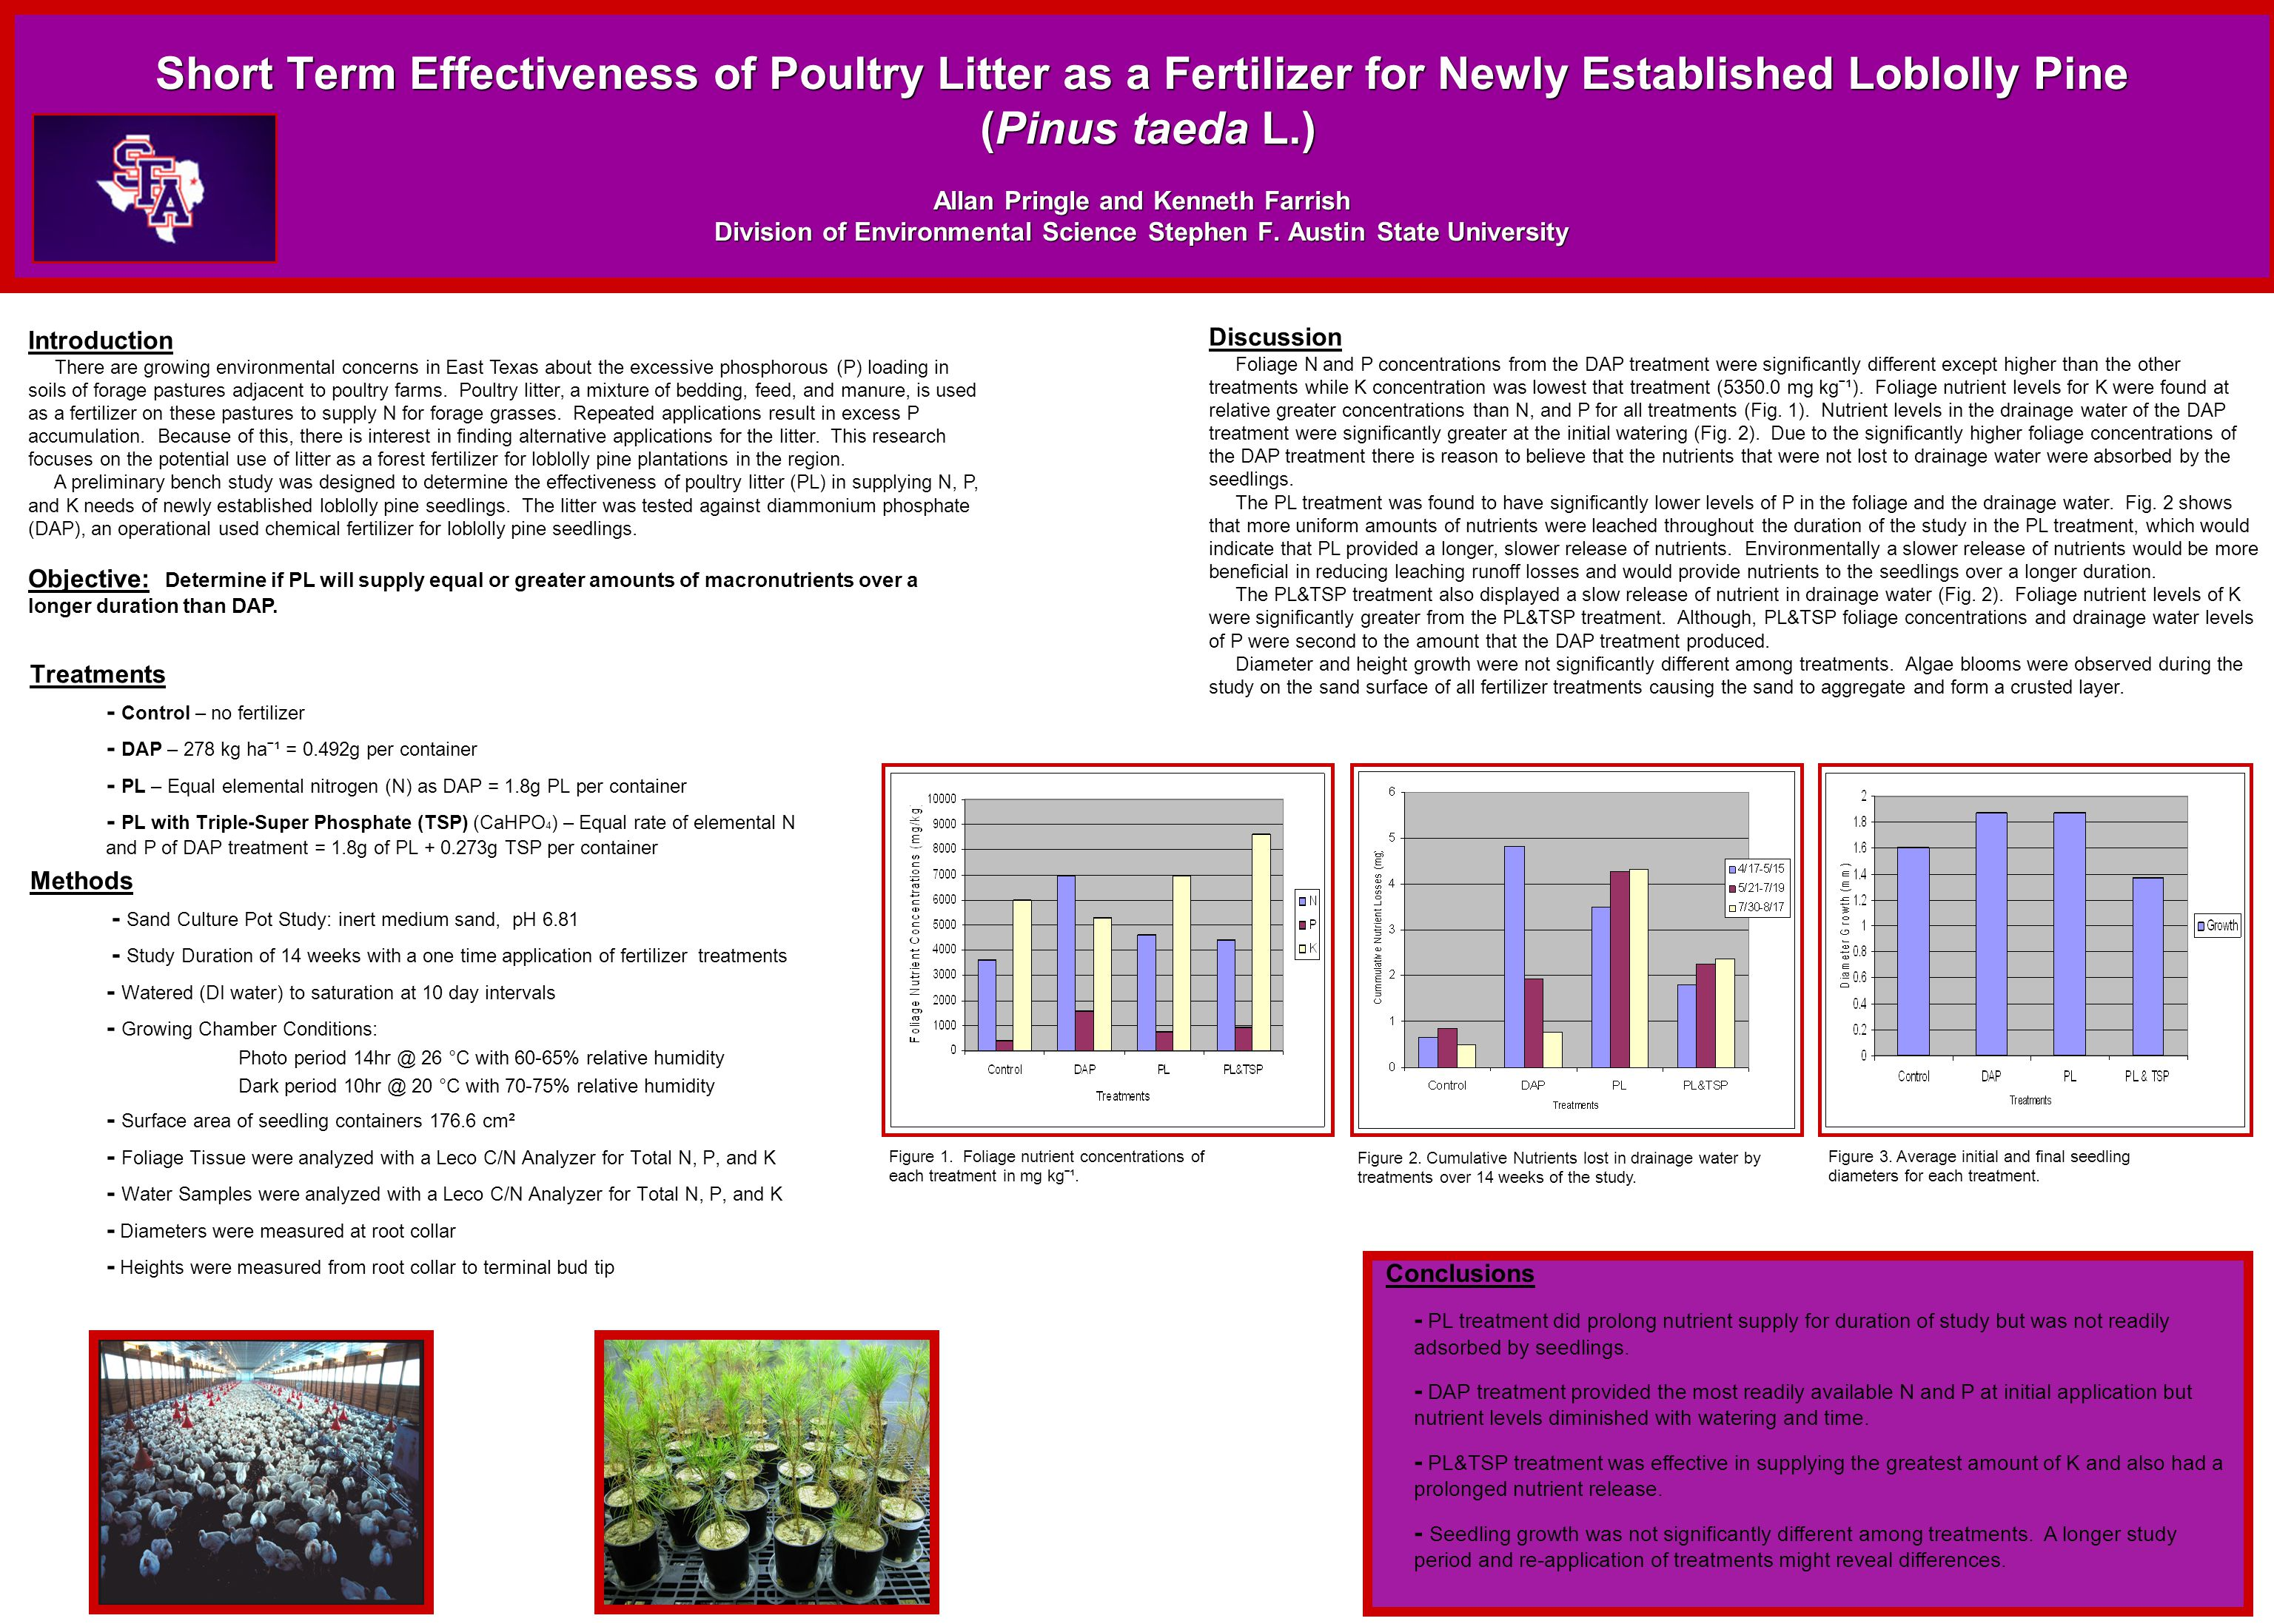 Short Term Effectiveness of Poultry Litter as a Fertilizer for Newly Established Loblolly Pine (Pinus taeda L.) Allan Pringle and Kenneth Farrish Division of Environmental Science Stephen F.